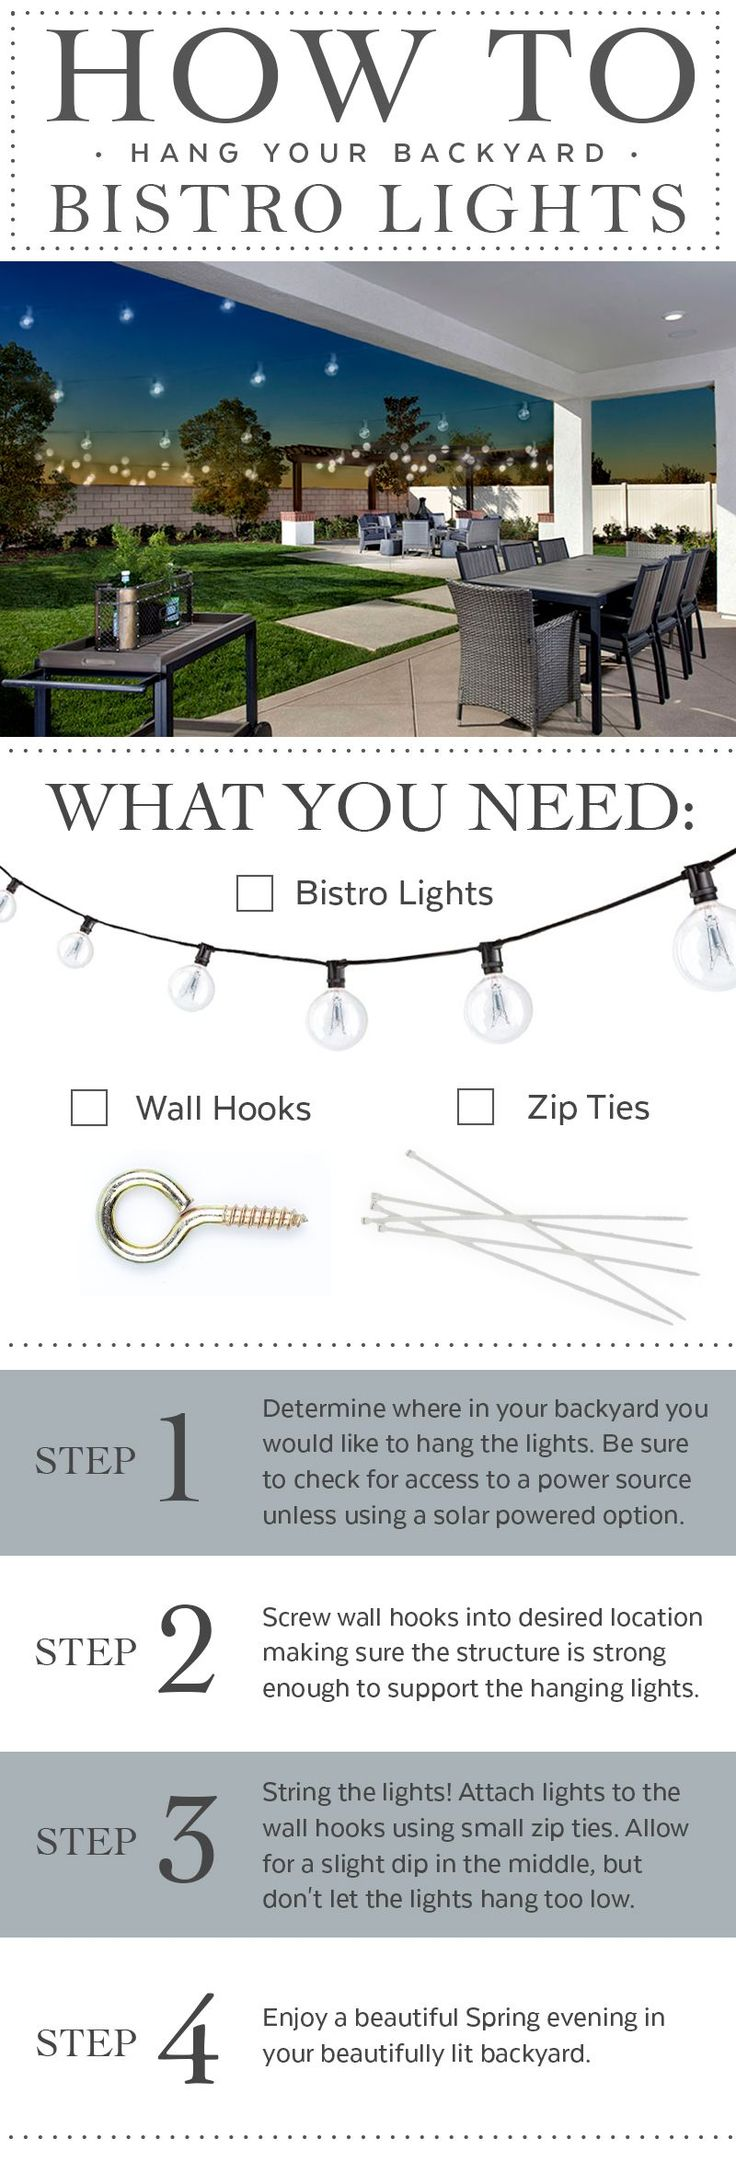 Bistro Lights Are A Creative And Cost Effective Way To Decorate Your  Backyard This Spring.